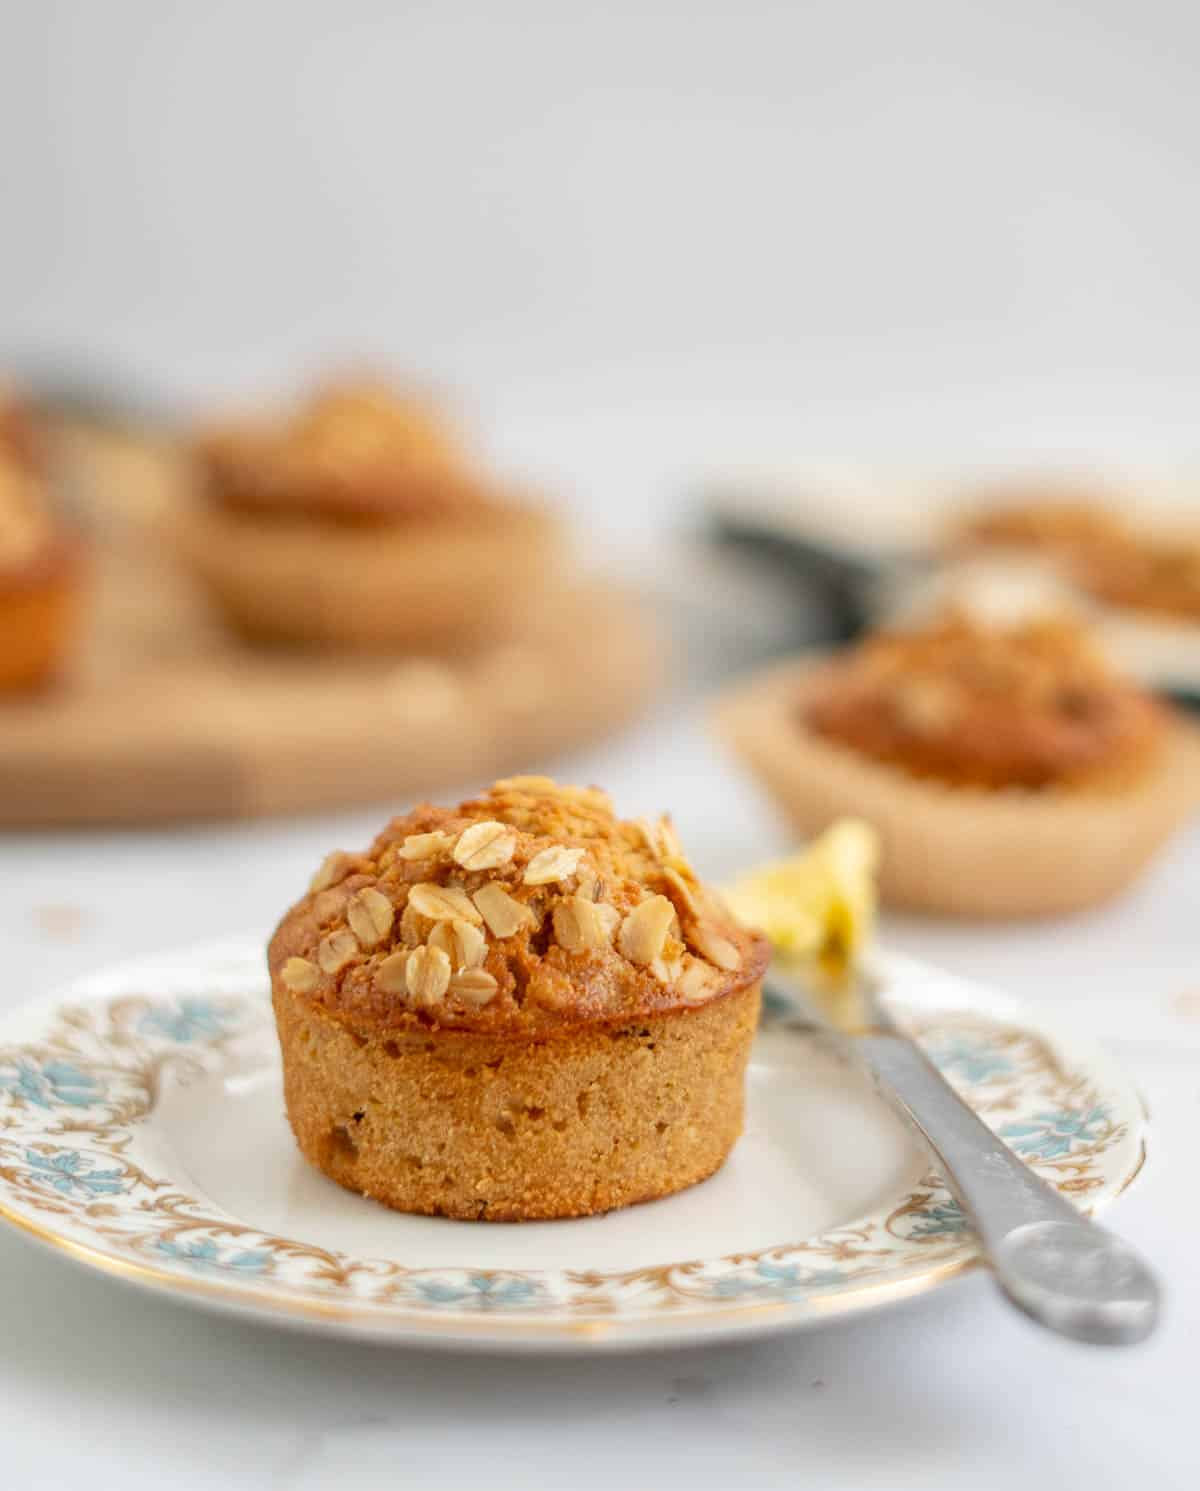 oatmeal muffin on a blue floral plate